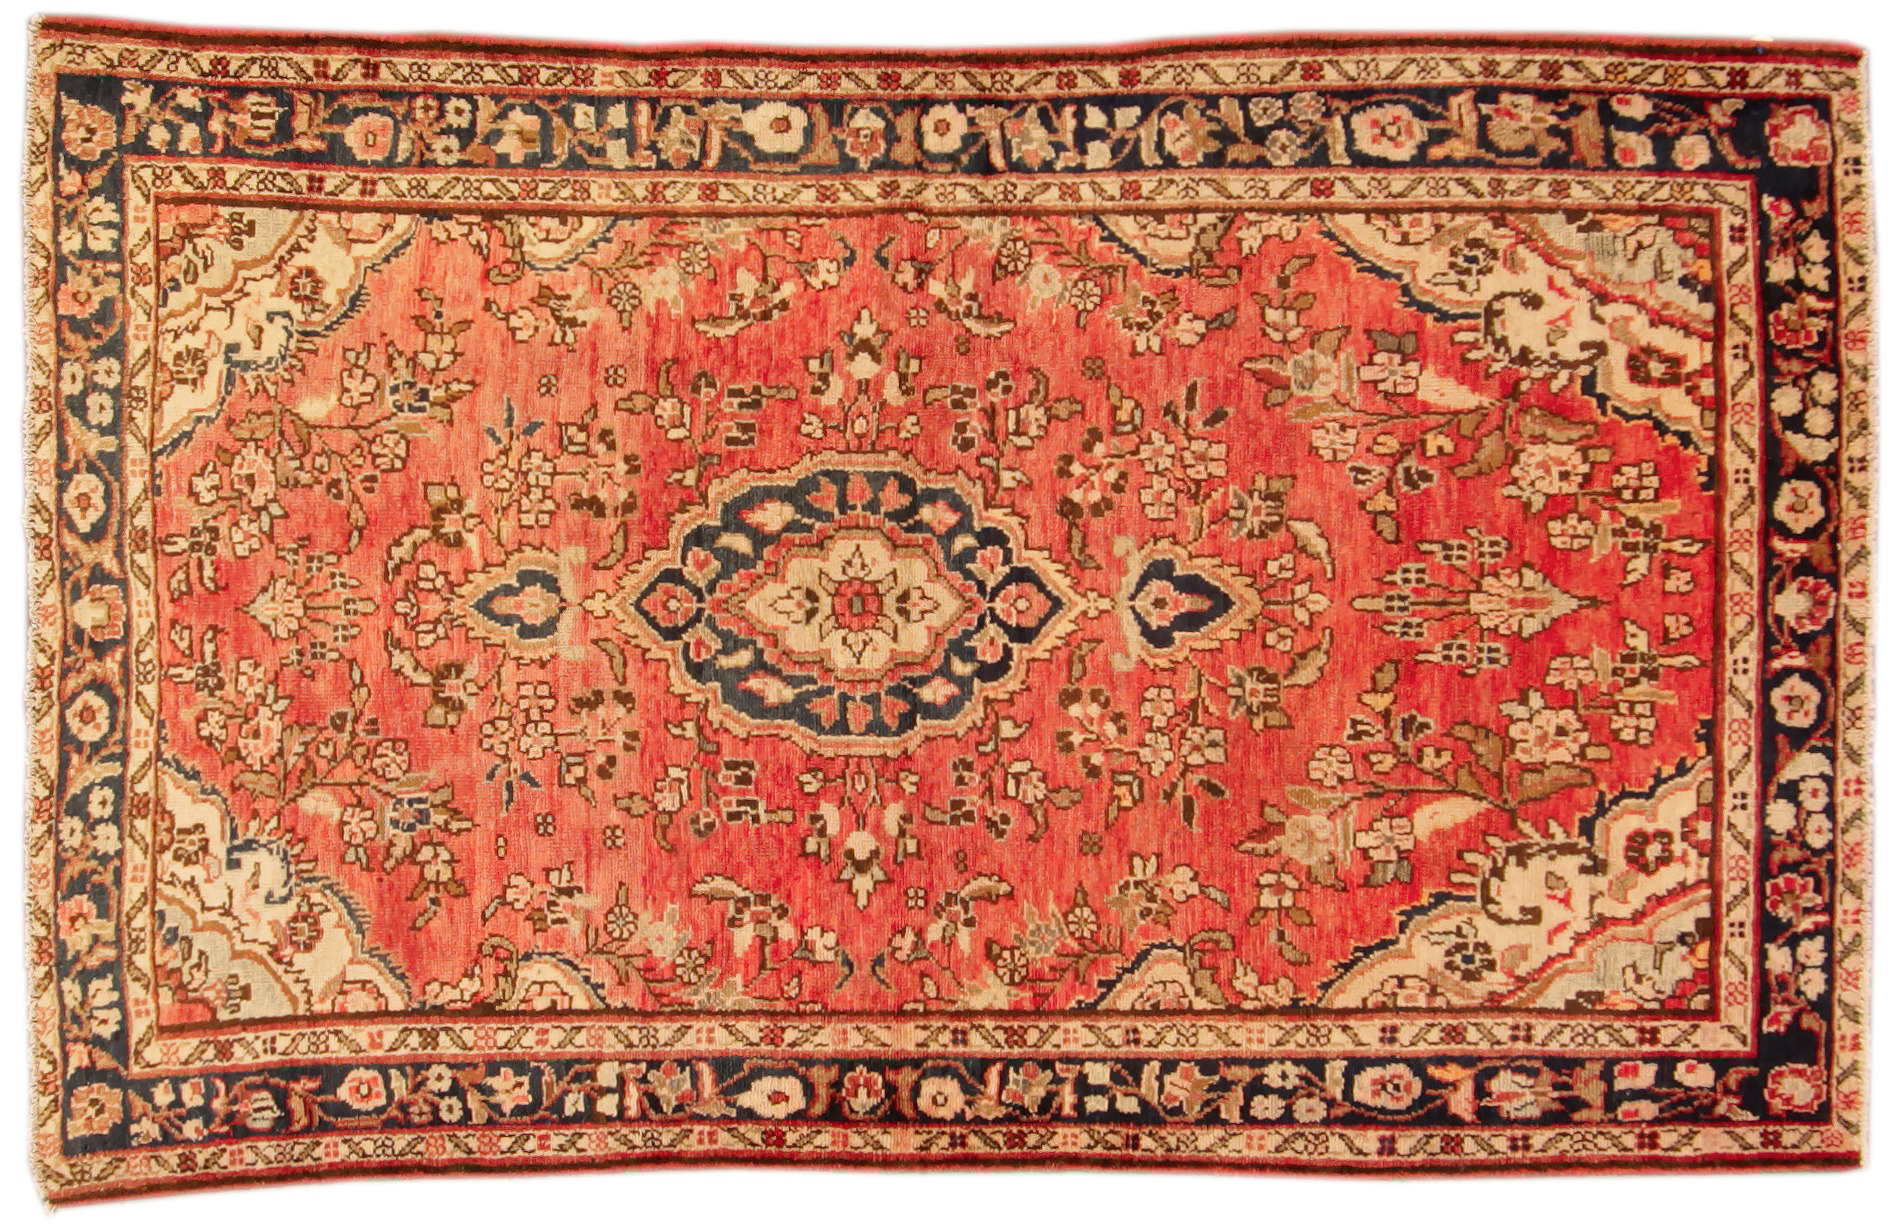 Vintage wool rugs ehsani fine rugs - Deluxe persian living room designs with artistic rug collection ...